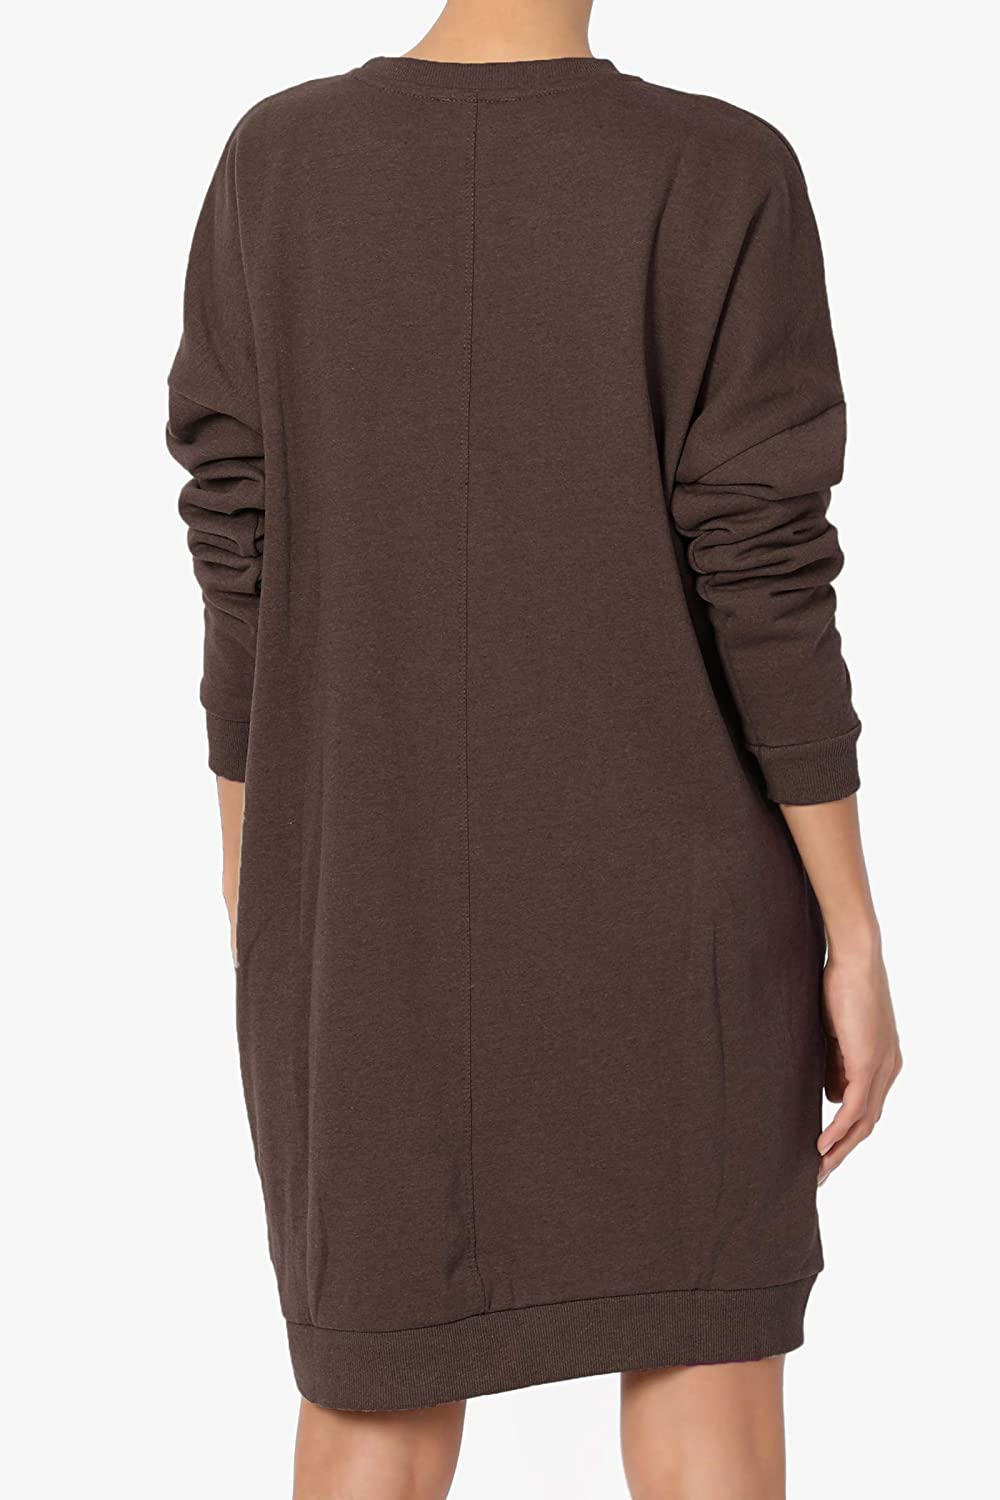 8fb7a9685e2 TheMogan Casual Oversized Crew V Neck Sweatshirts Loose Fit Pullover Tunic  S~3XL at Amazon Women's Clothing store: